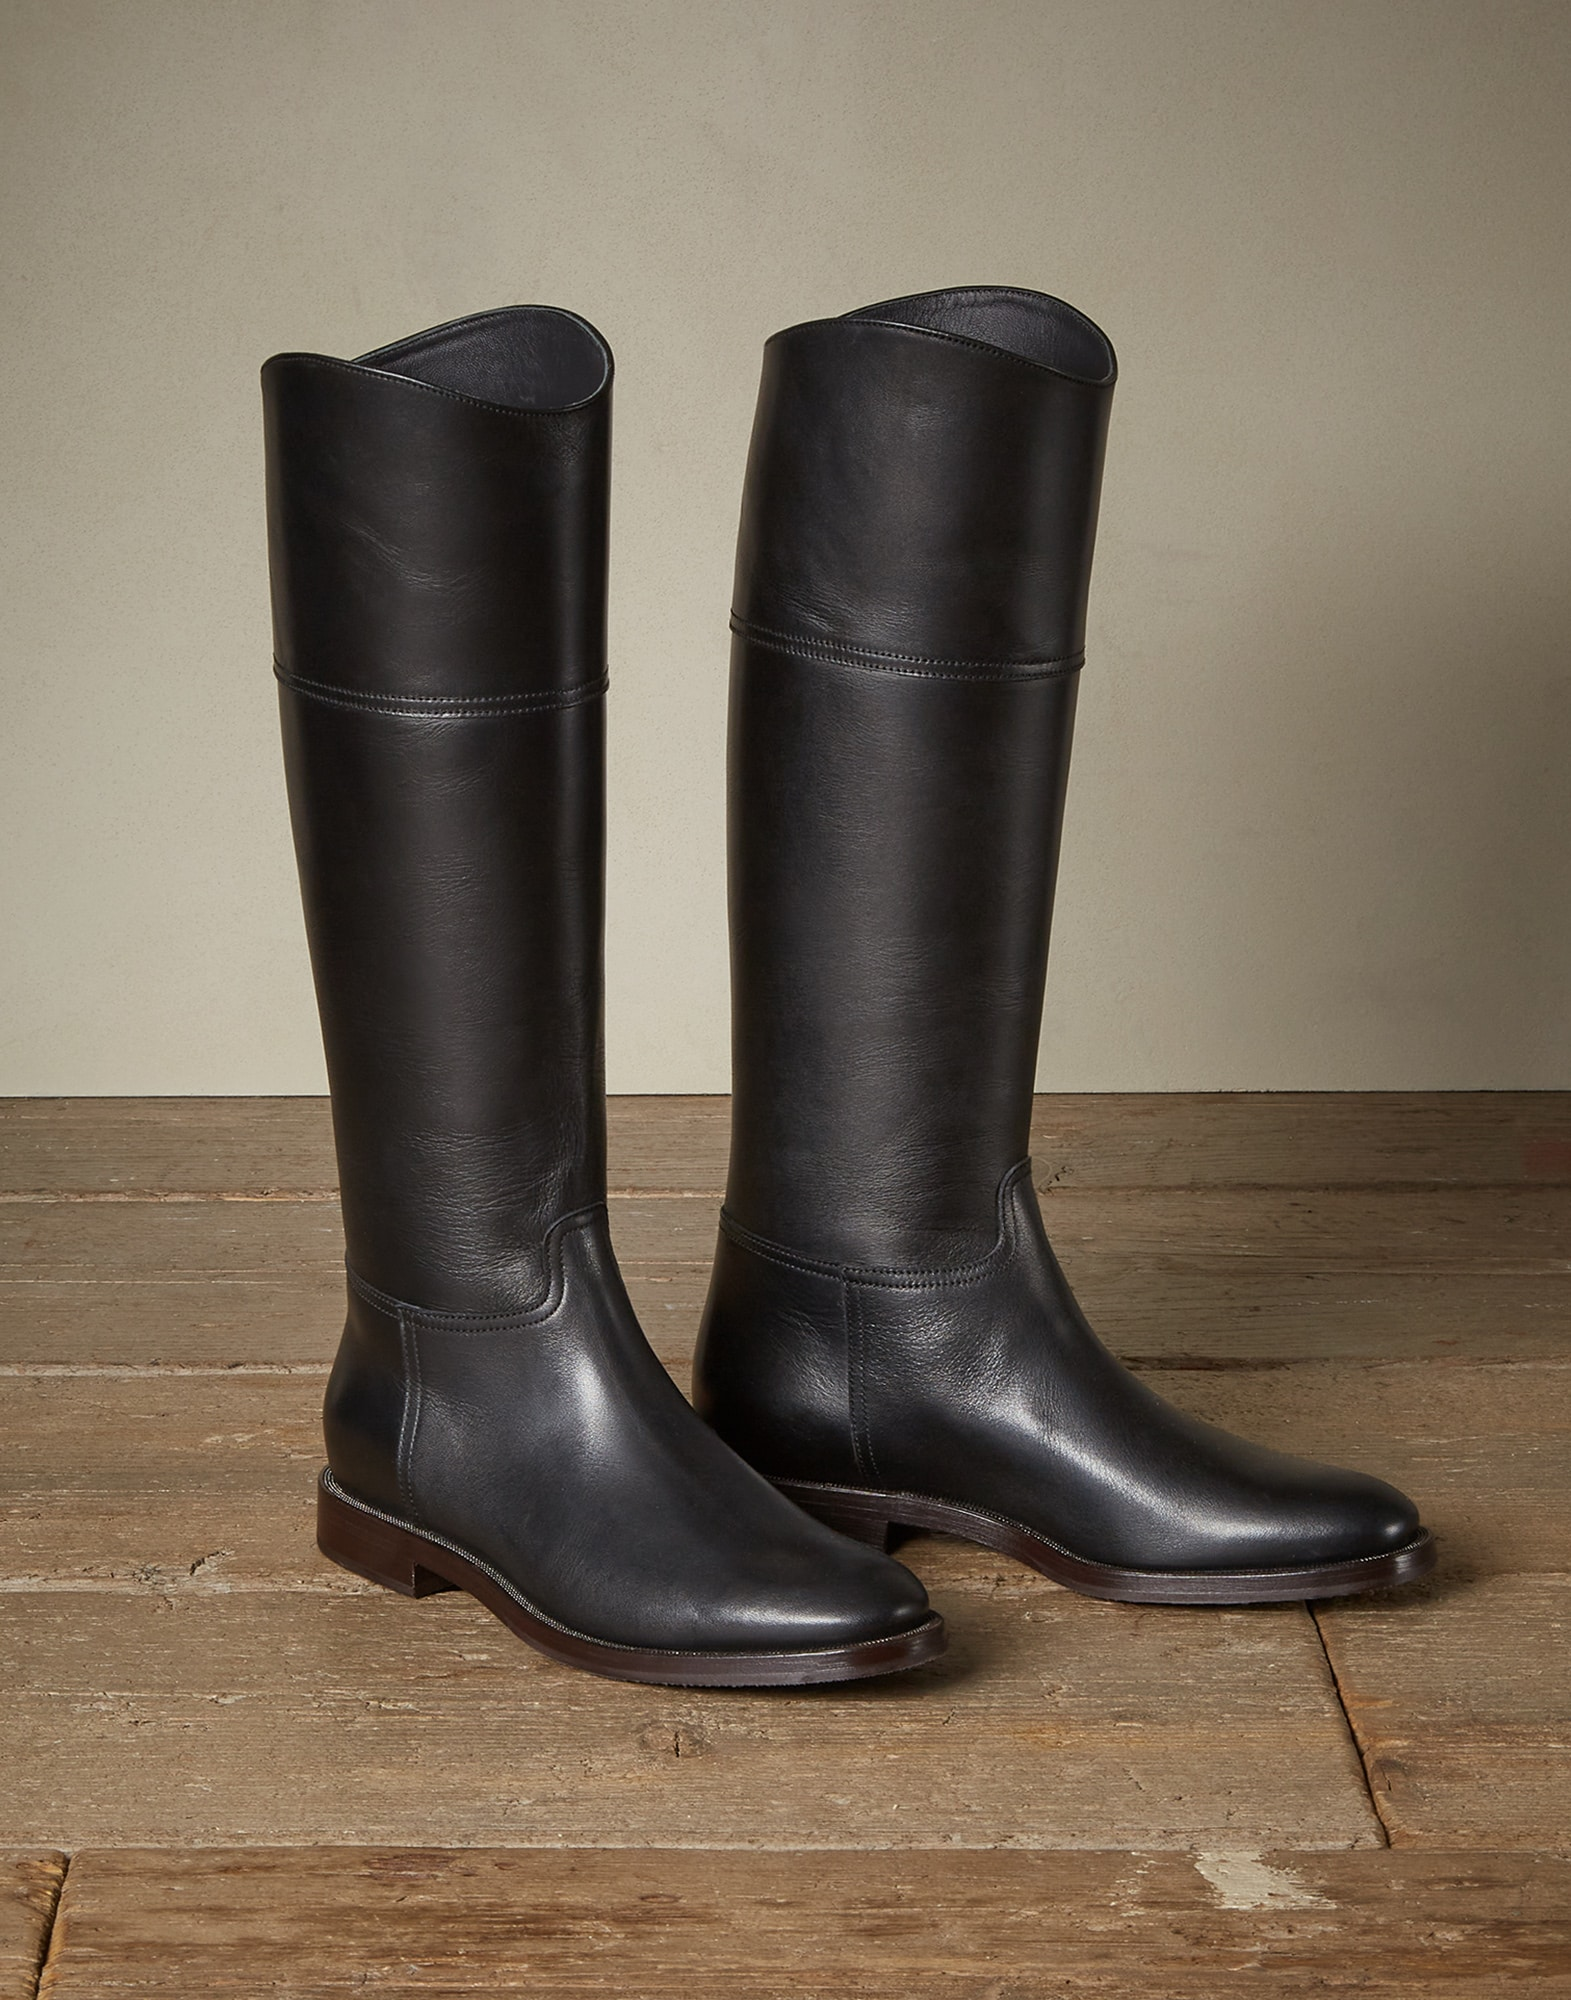 High-Boots Black Woman 0 - Brunello Cucinelli